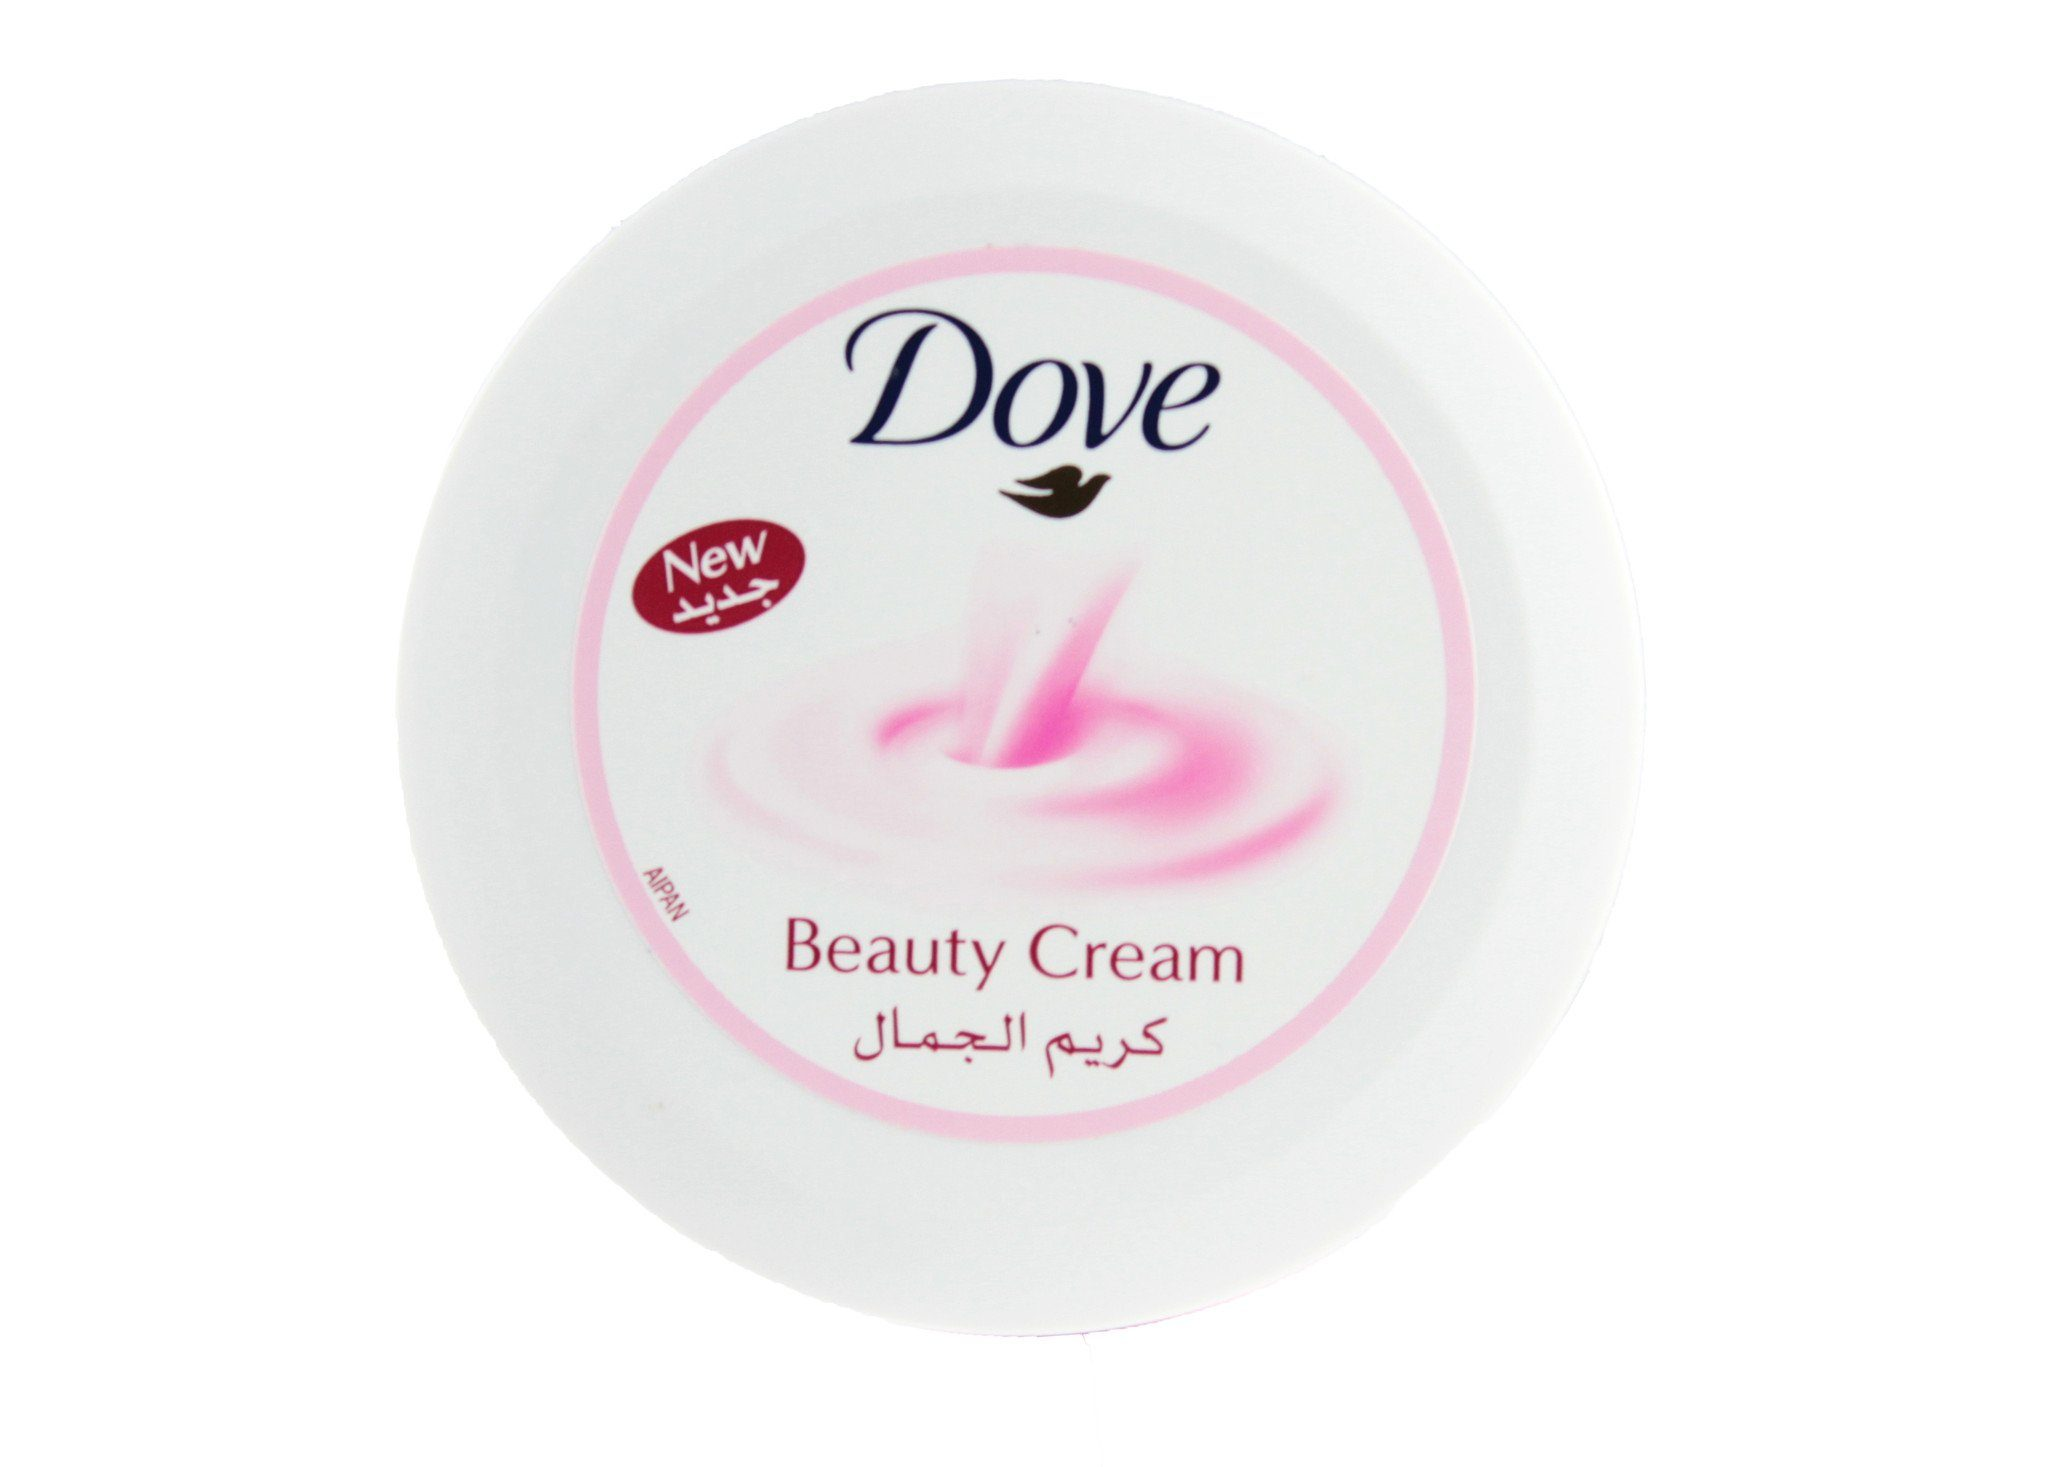 Dove PINK Beauty Cream (250 ml) - Sanadeeg